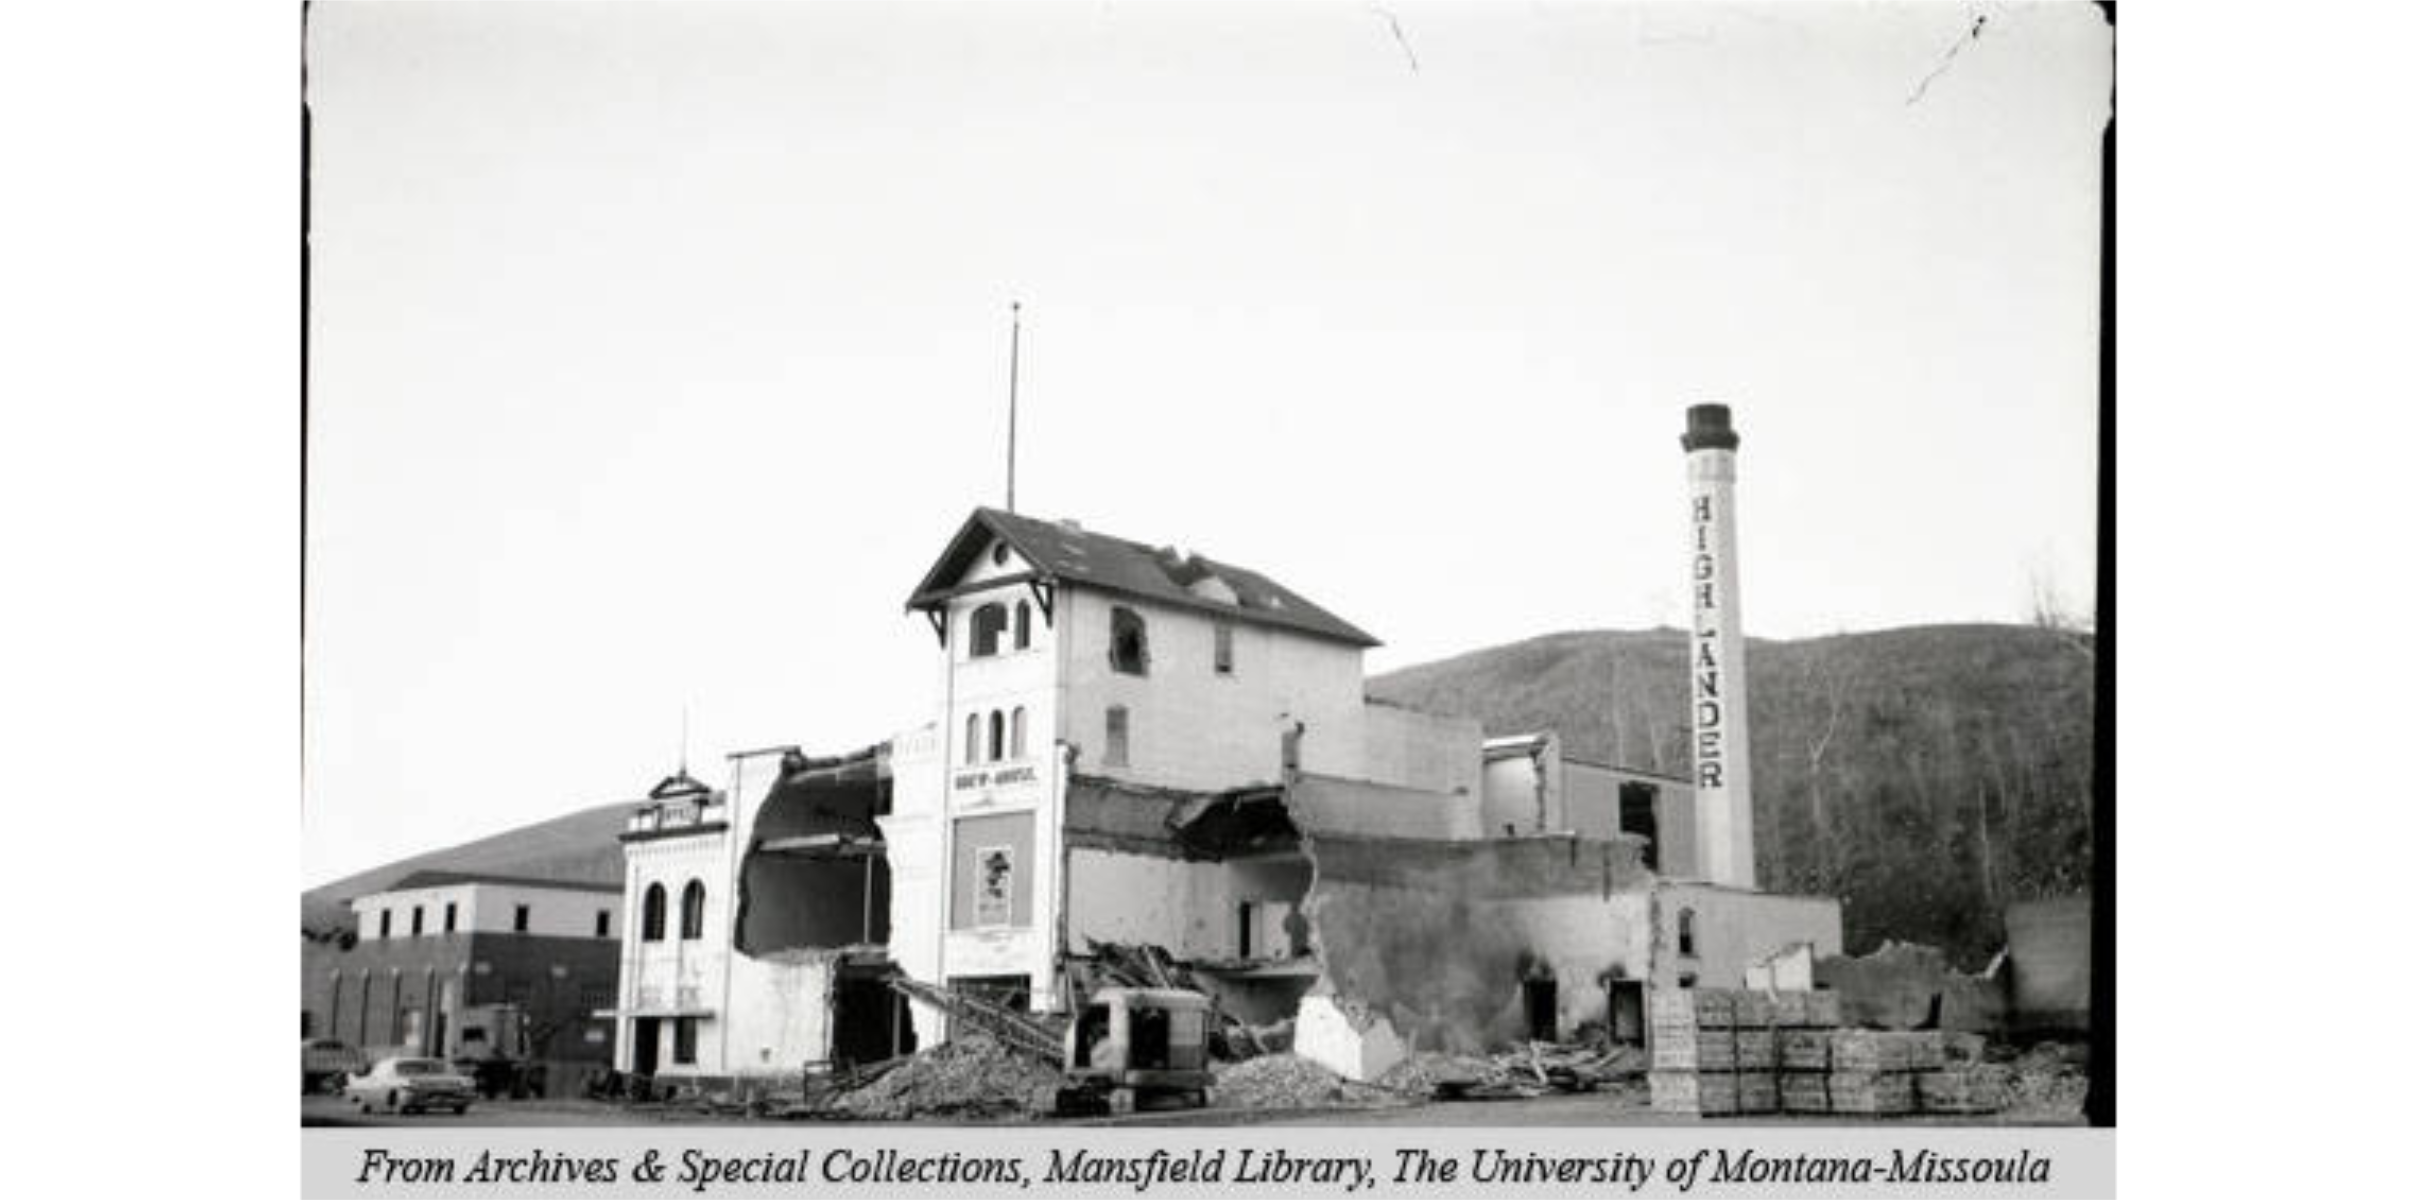 The partially destroyed brewery circa 1965